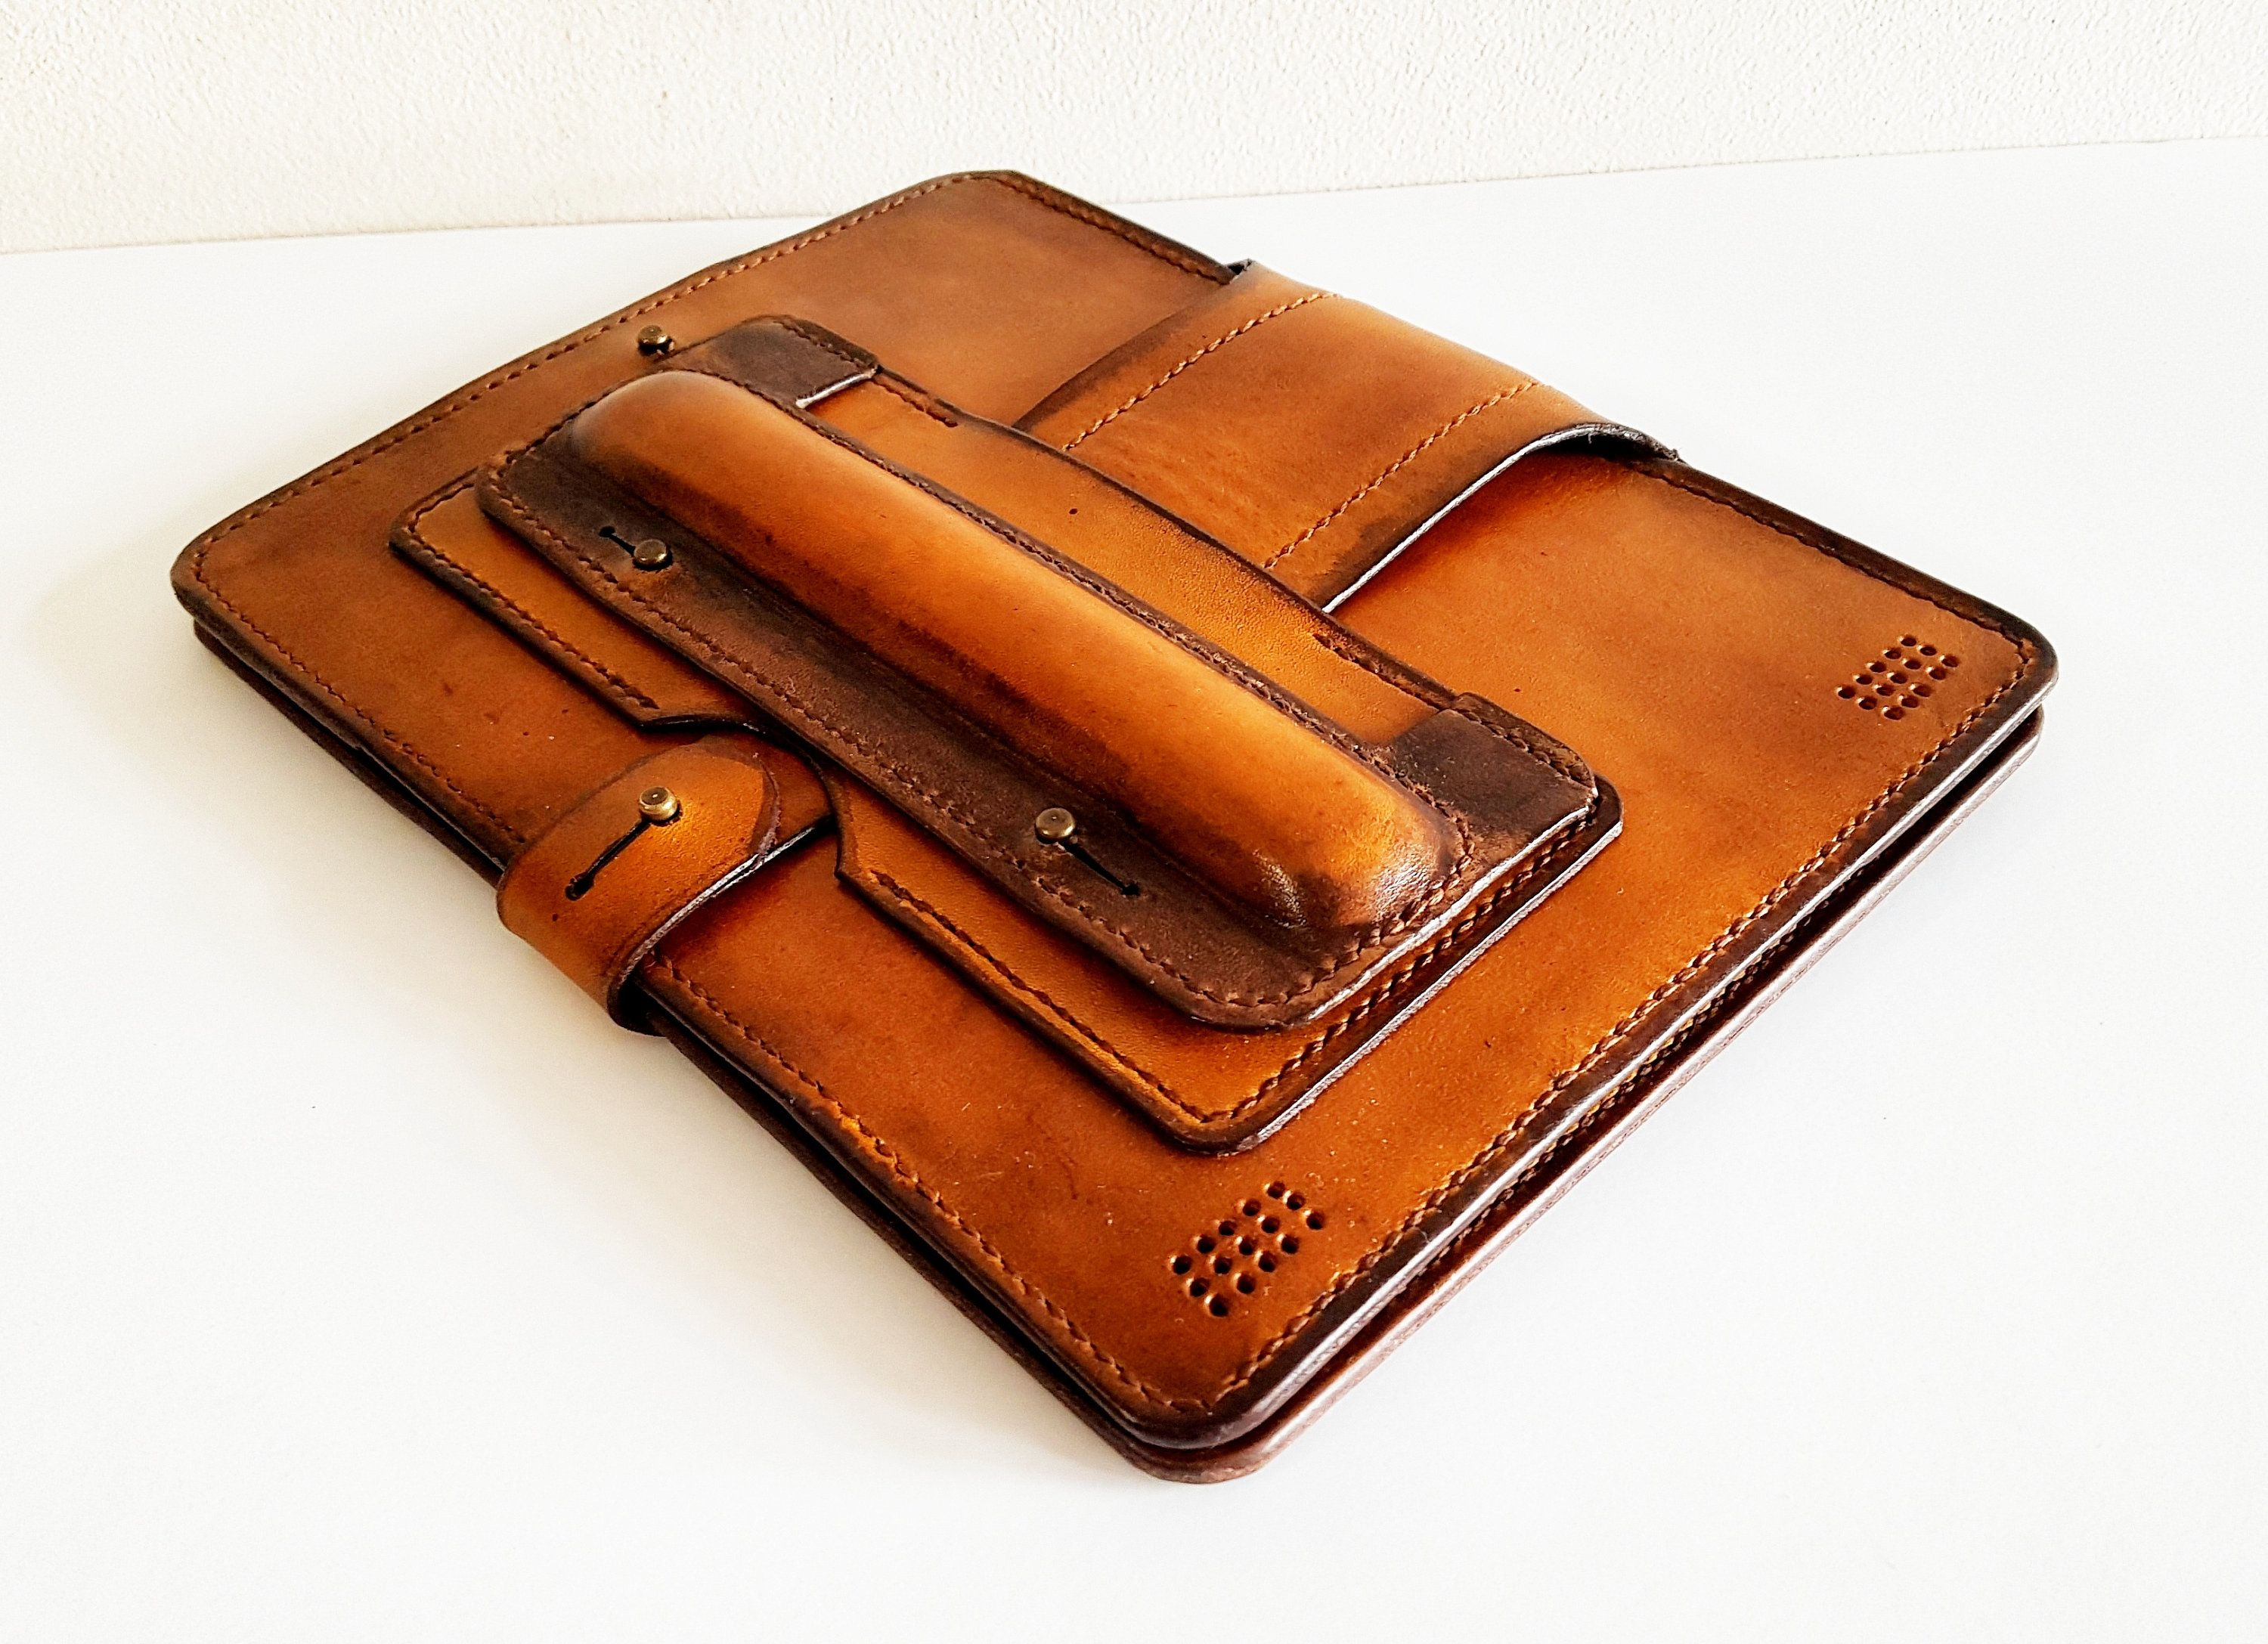 Onyx Boox Note 10.3 Leather Cover. Onyx Boox Leather Case